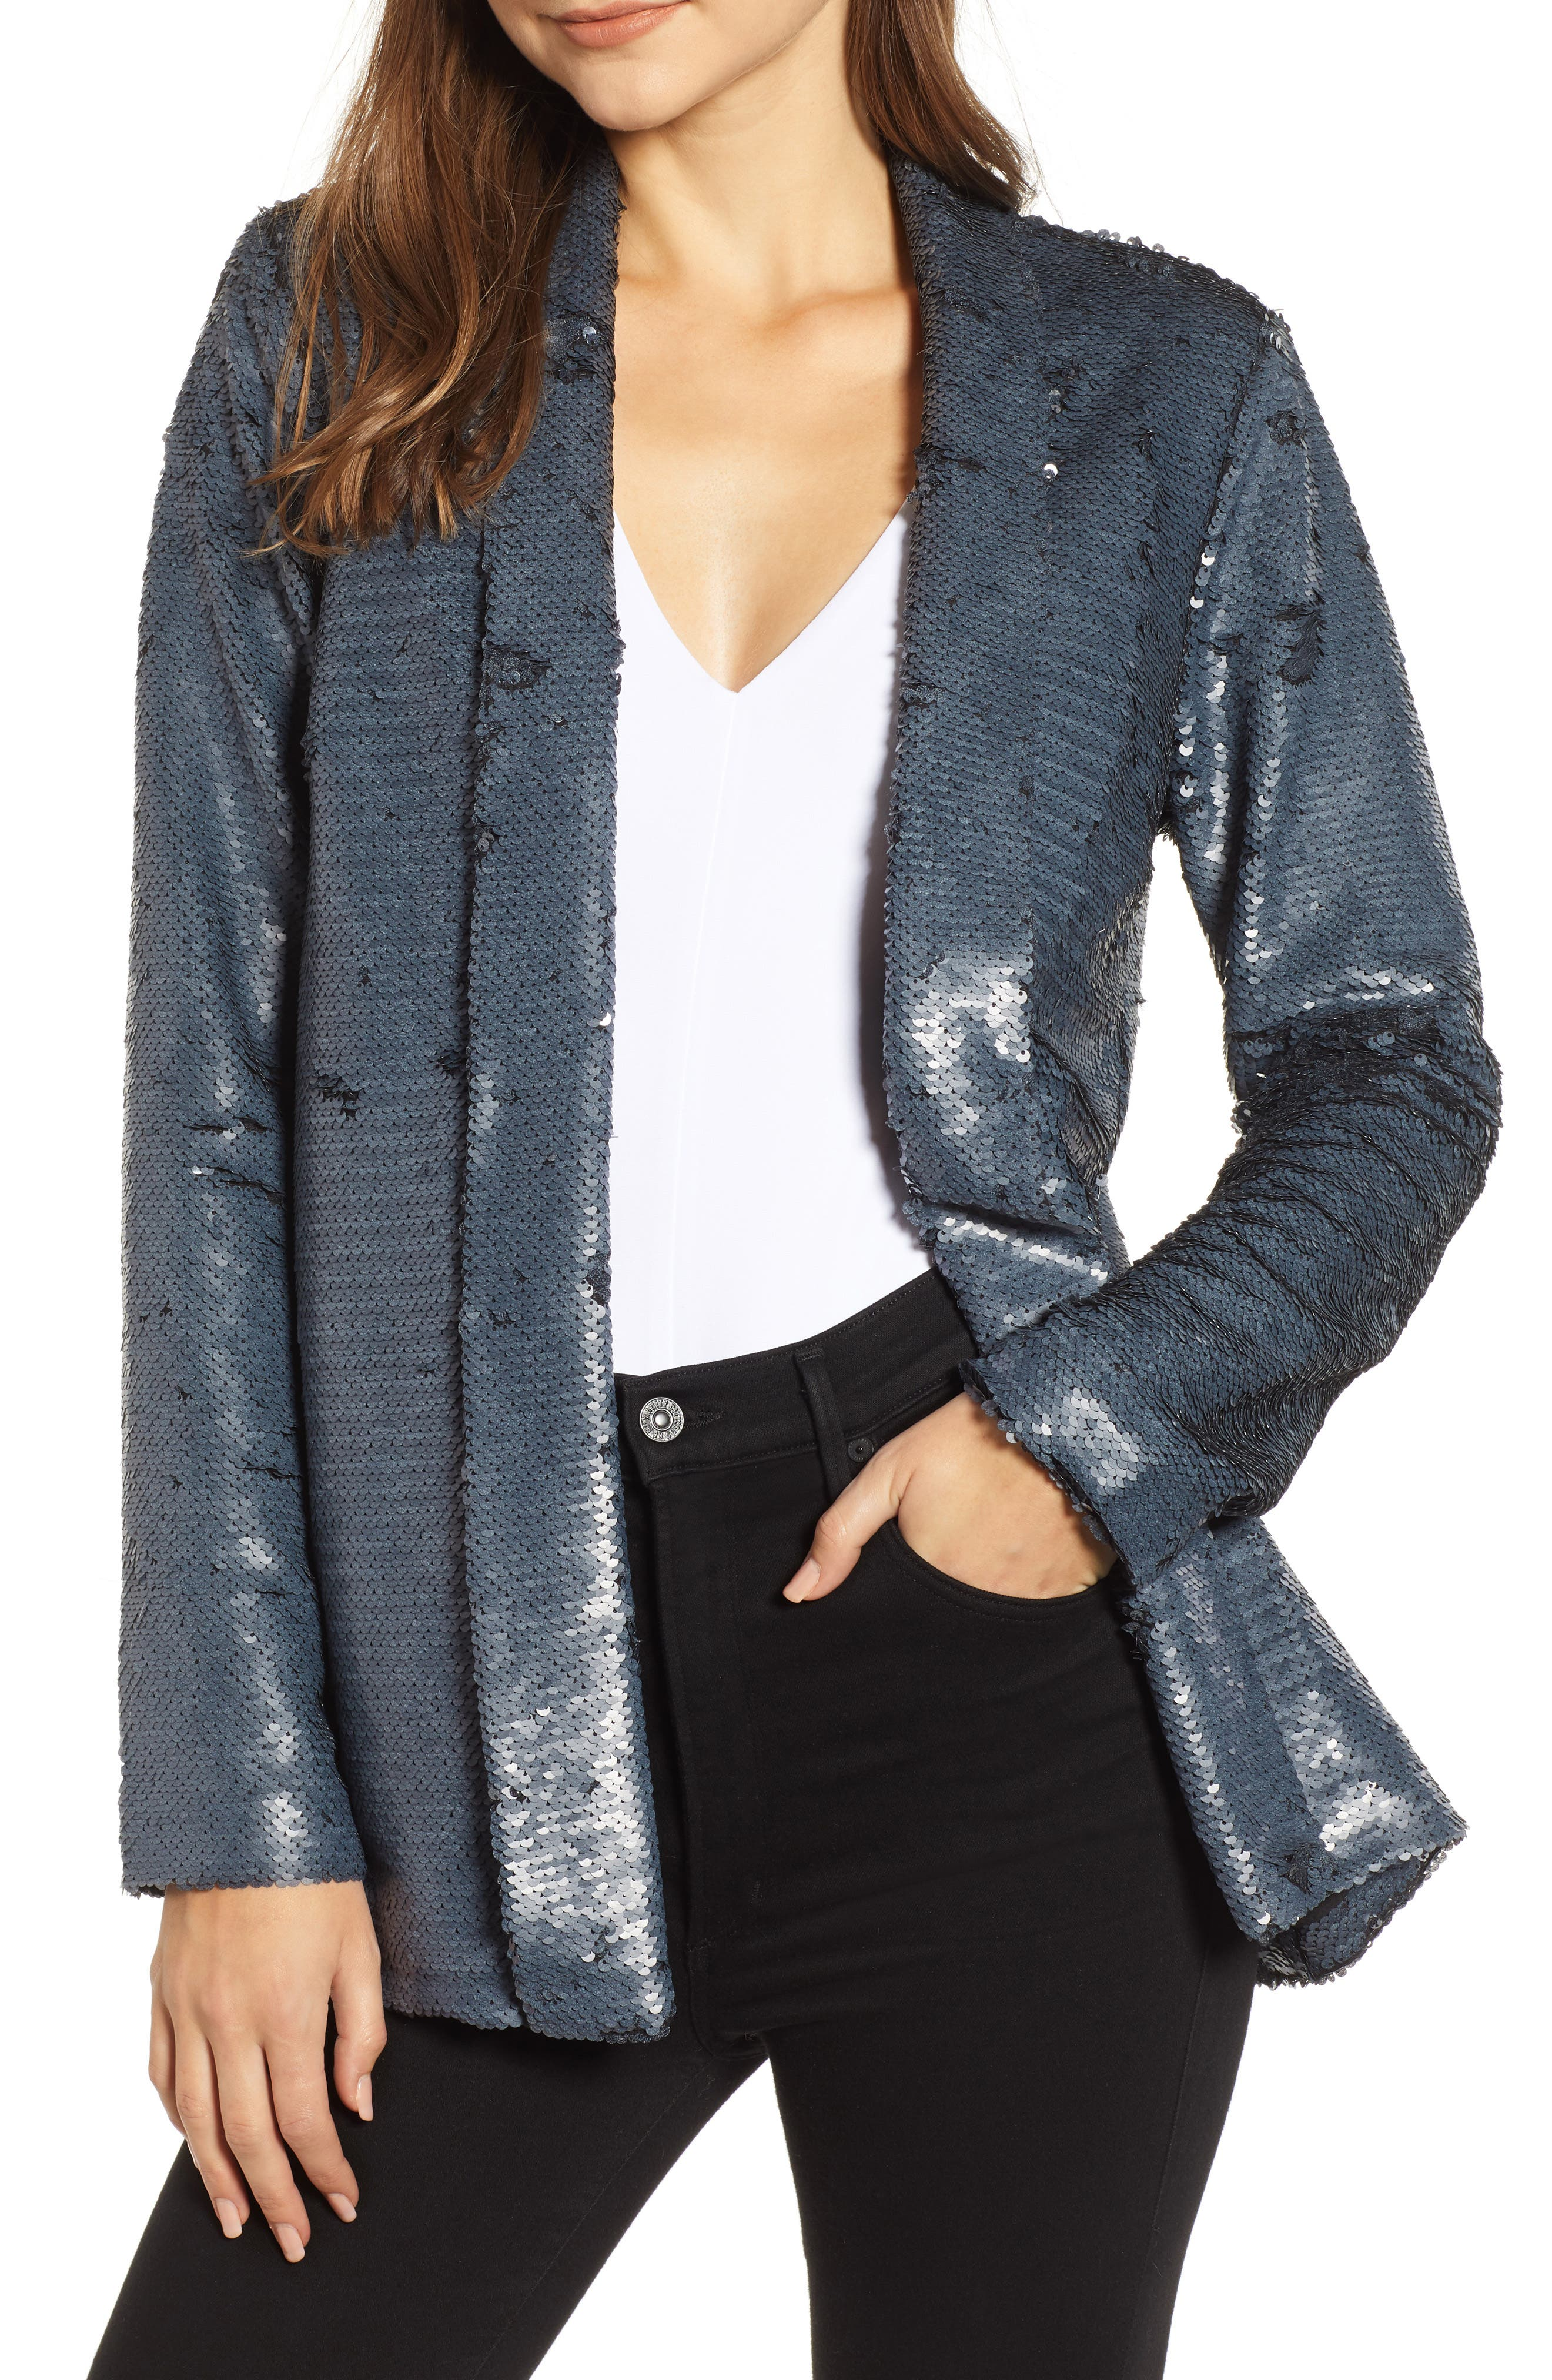 CUPCAKES AND CASHMERE Anastasia Sequined Open-Front Jacket in Charcoal